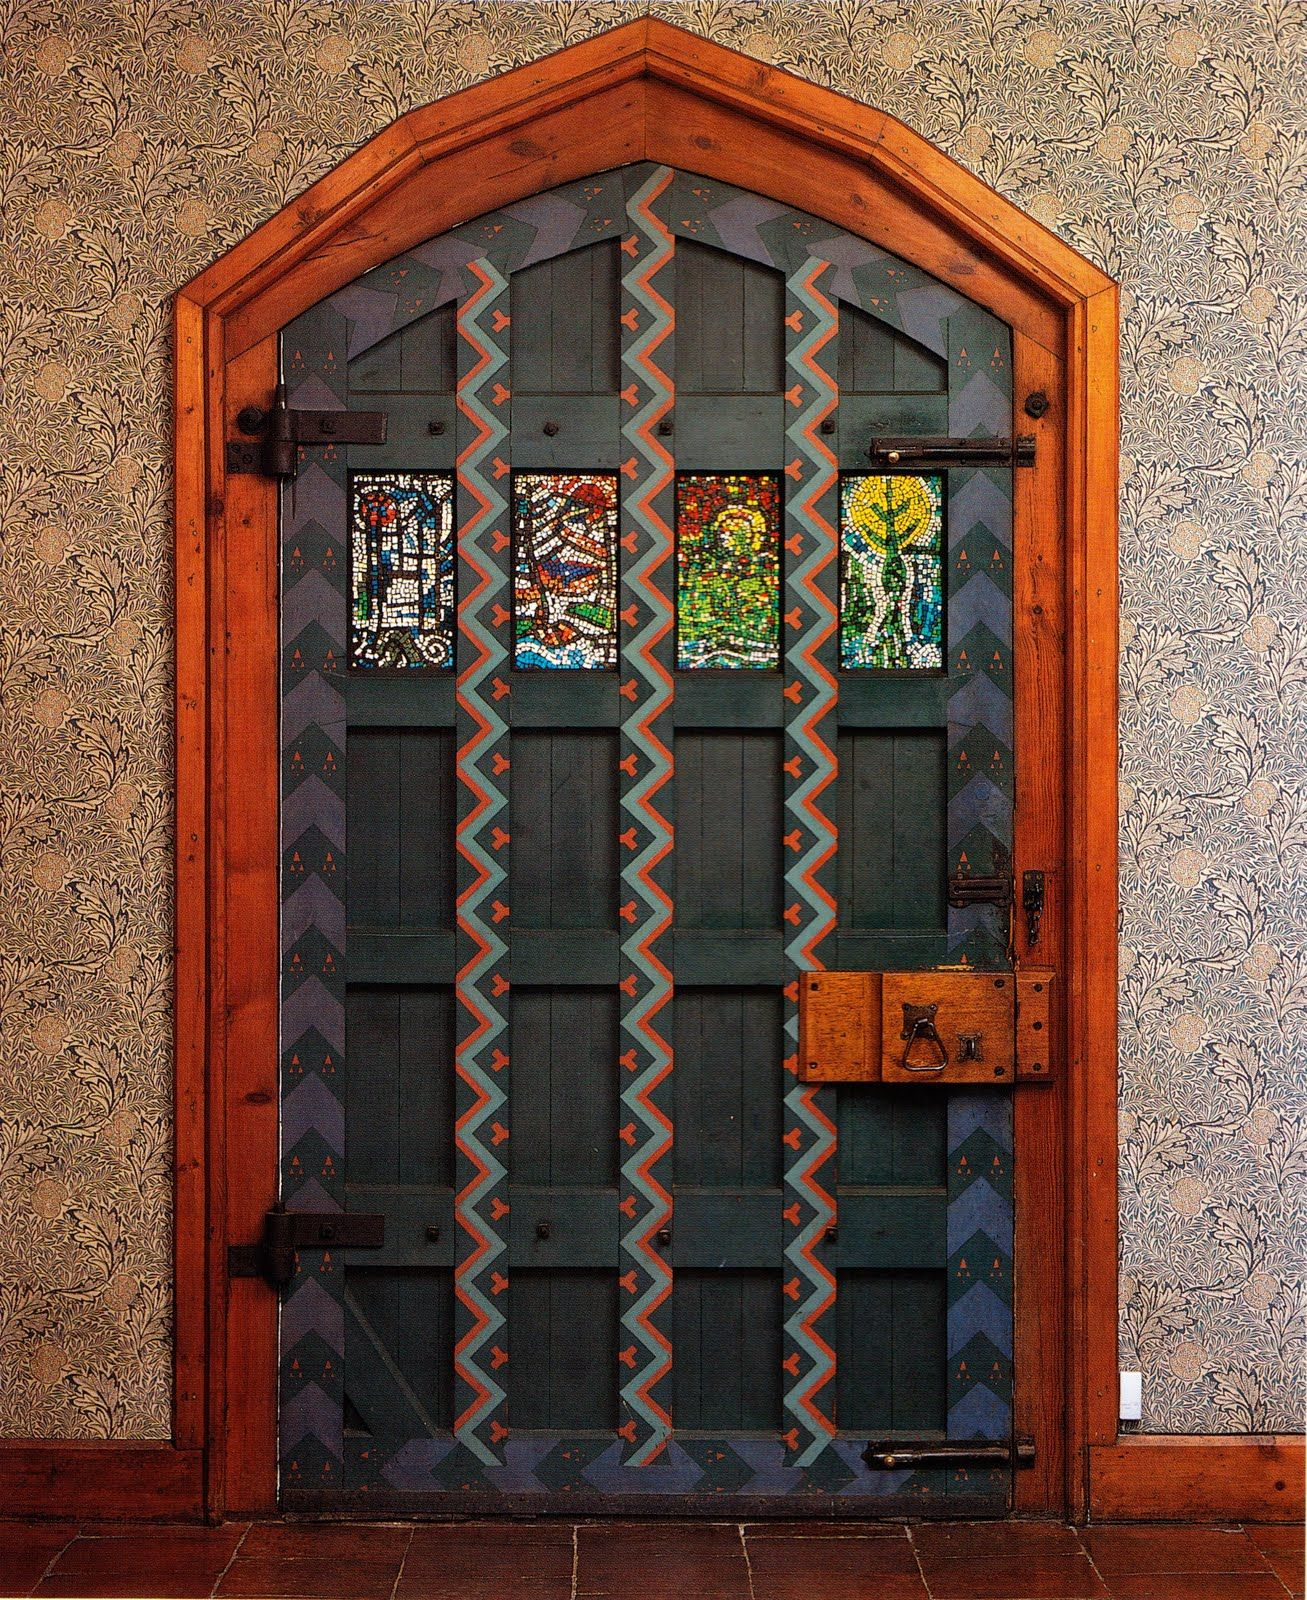 """The front entrance door to Red House, a home William Morris designed with Philip Webb & built while they were in their 20s. via """"William Morris Fan Club"""" blog"""